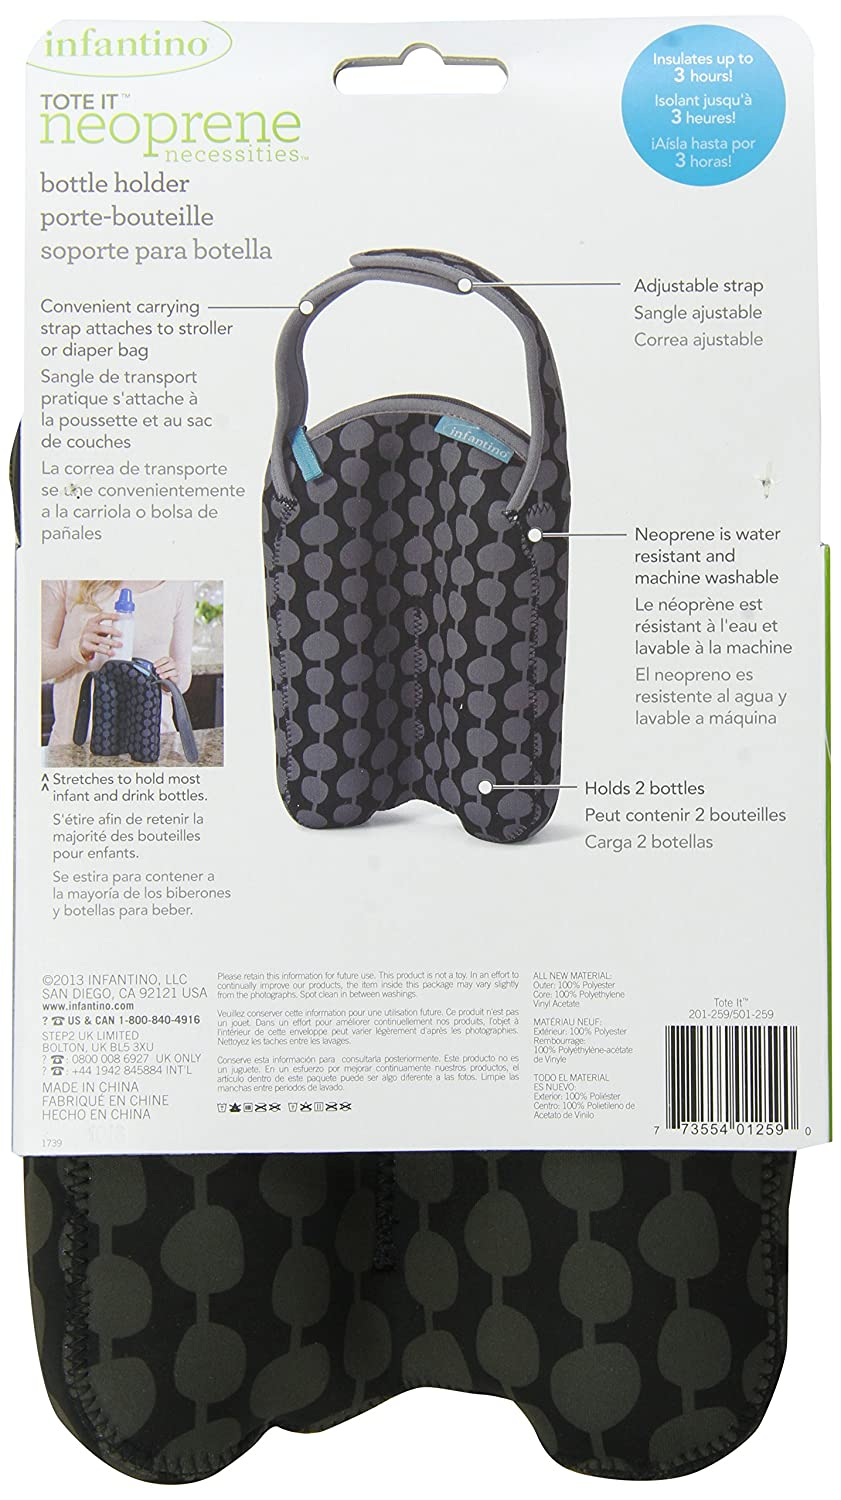 Amazon.com : Infantino Tote It Bottle Holder : Baby Bottle Tote Bags : Baby